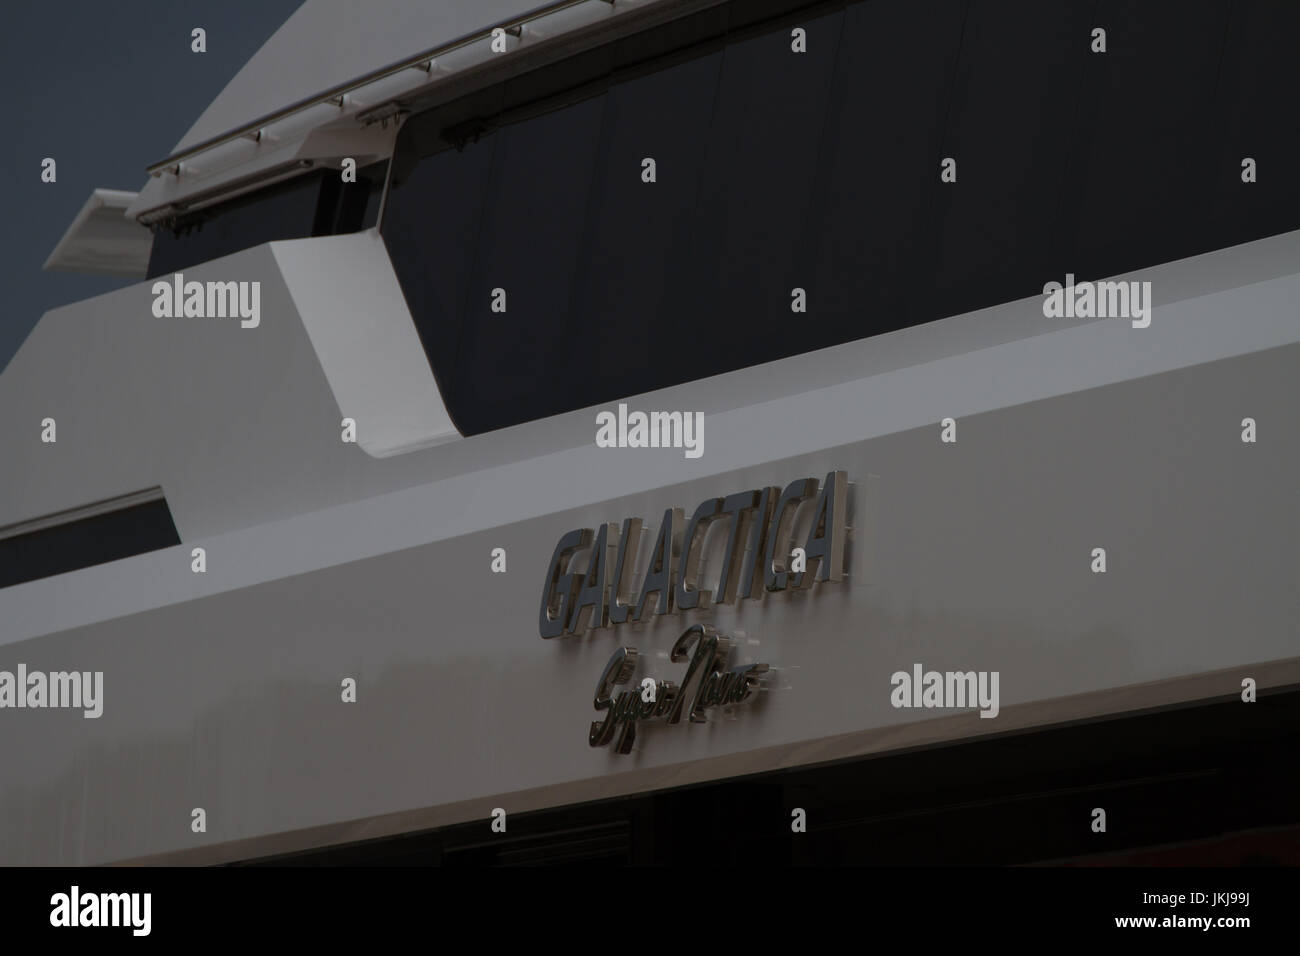 Name on side of Galactica a multimillion dollar yaght at Venice. Italy - Stock Image